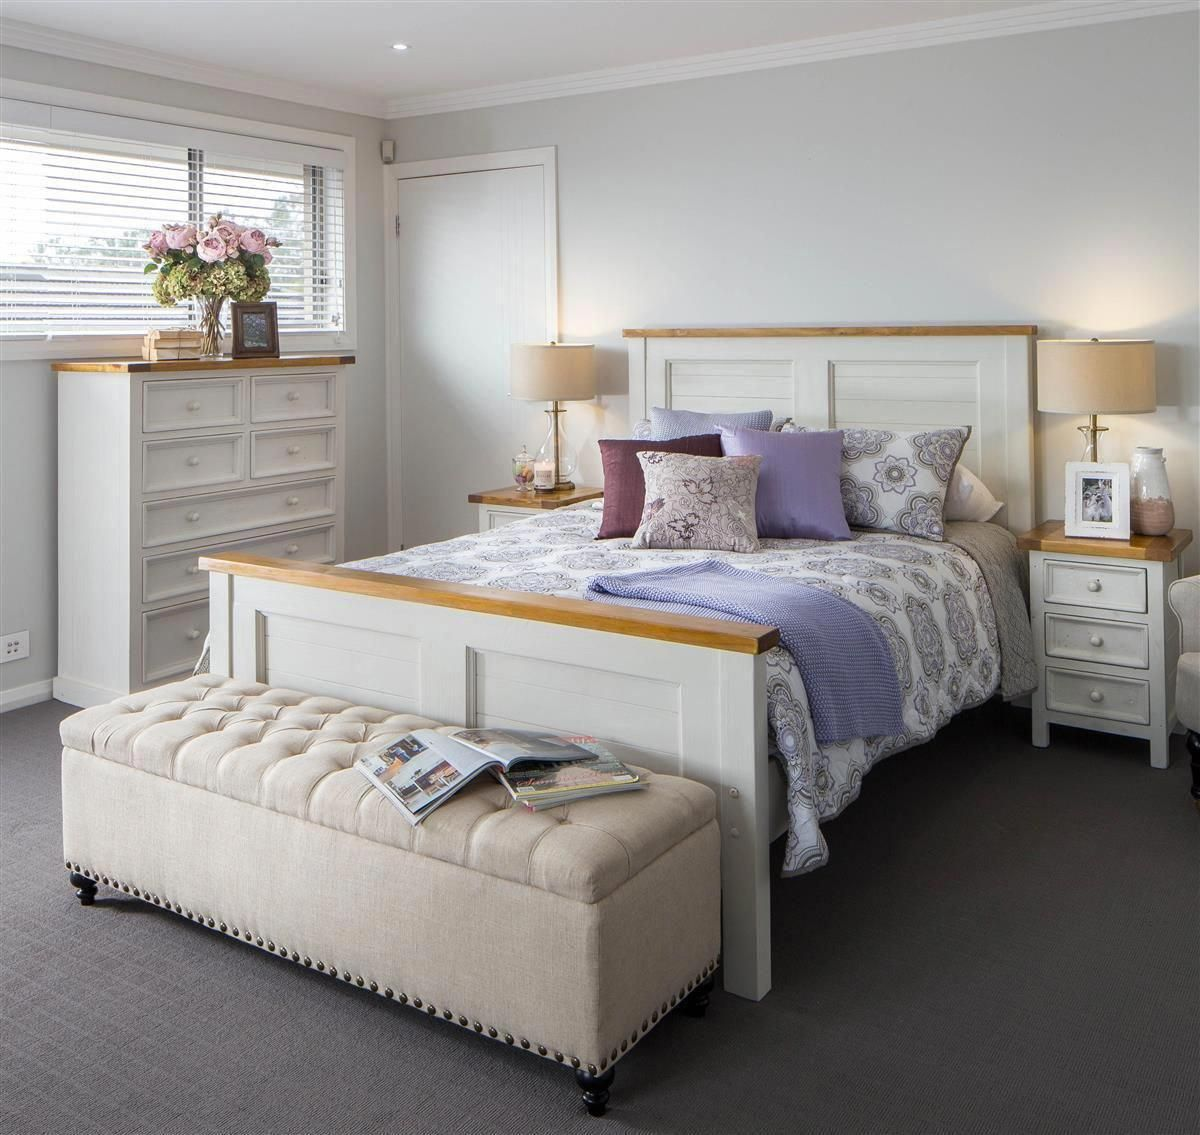 Impressive Décor. Very Sweet. Lovely Guest Bedroom Idea